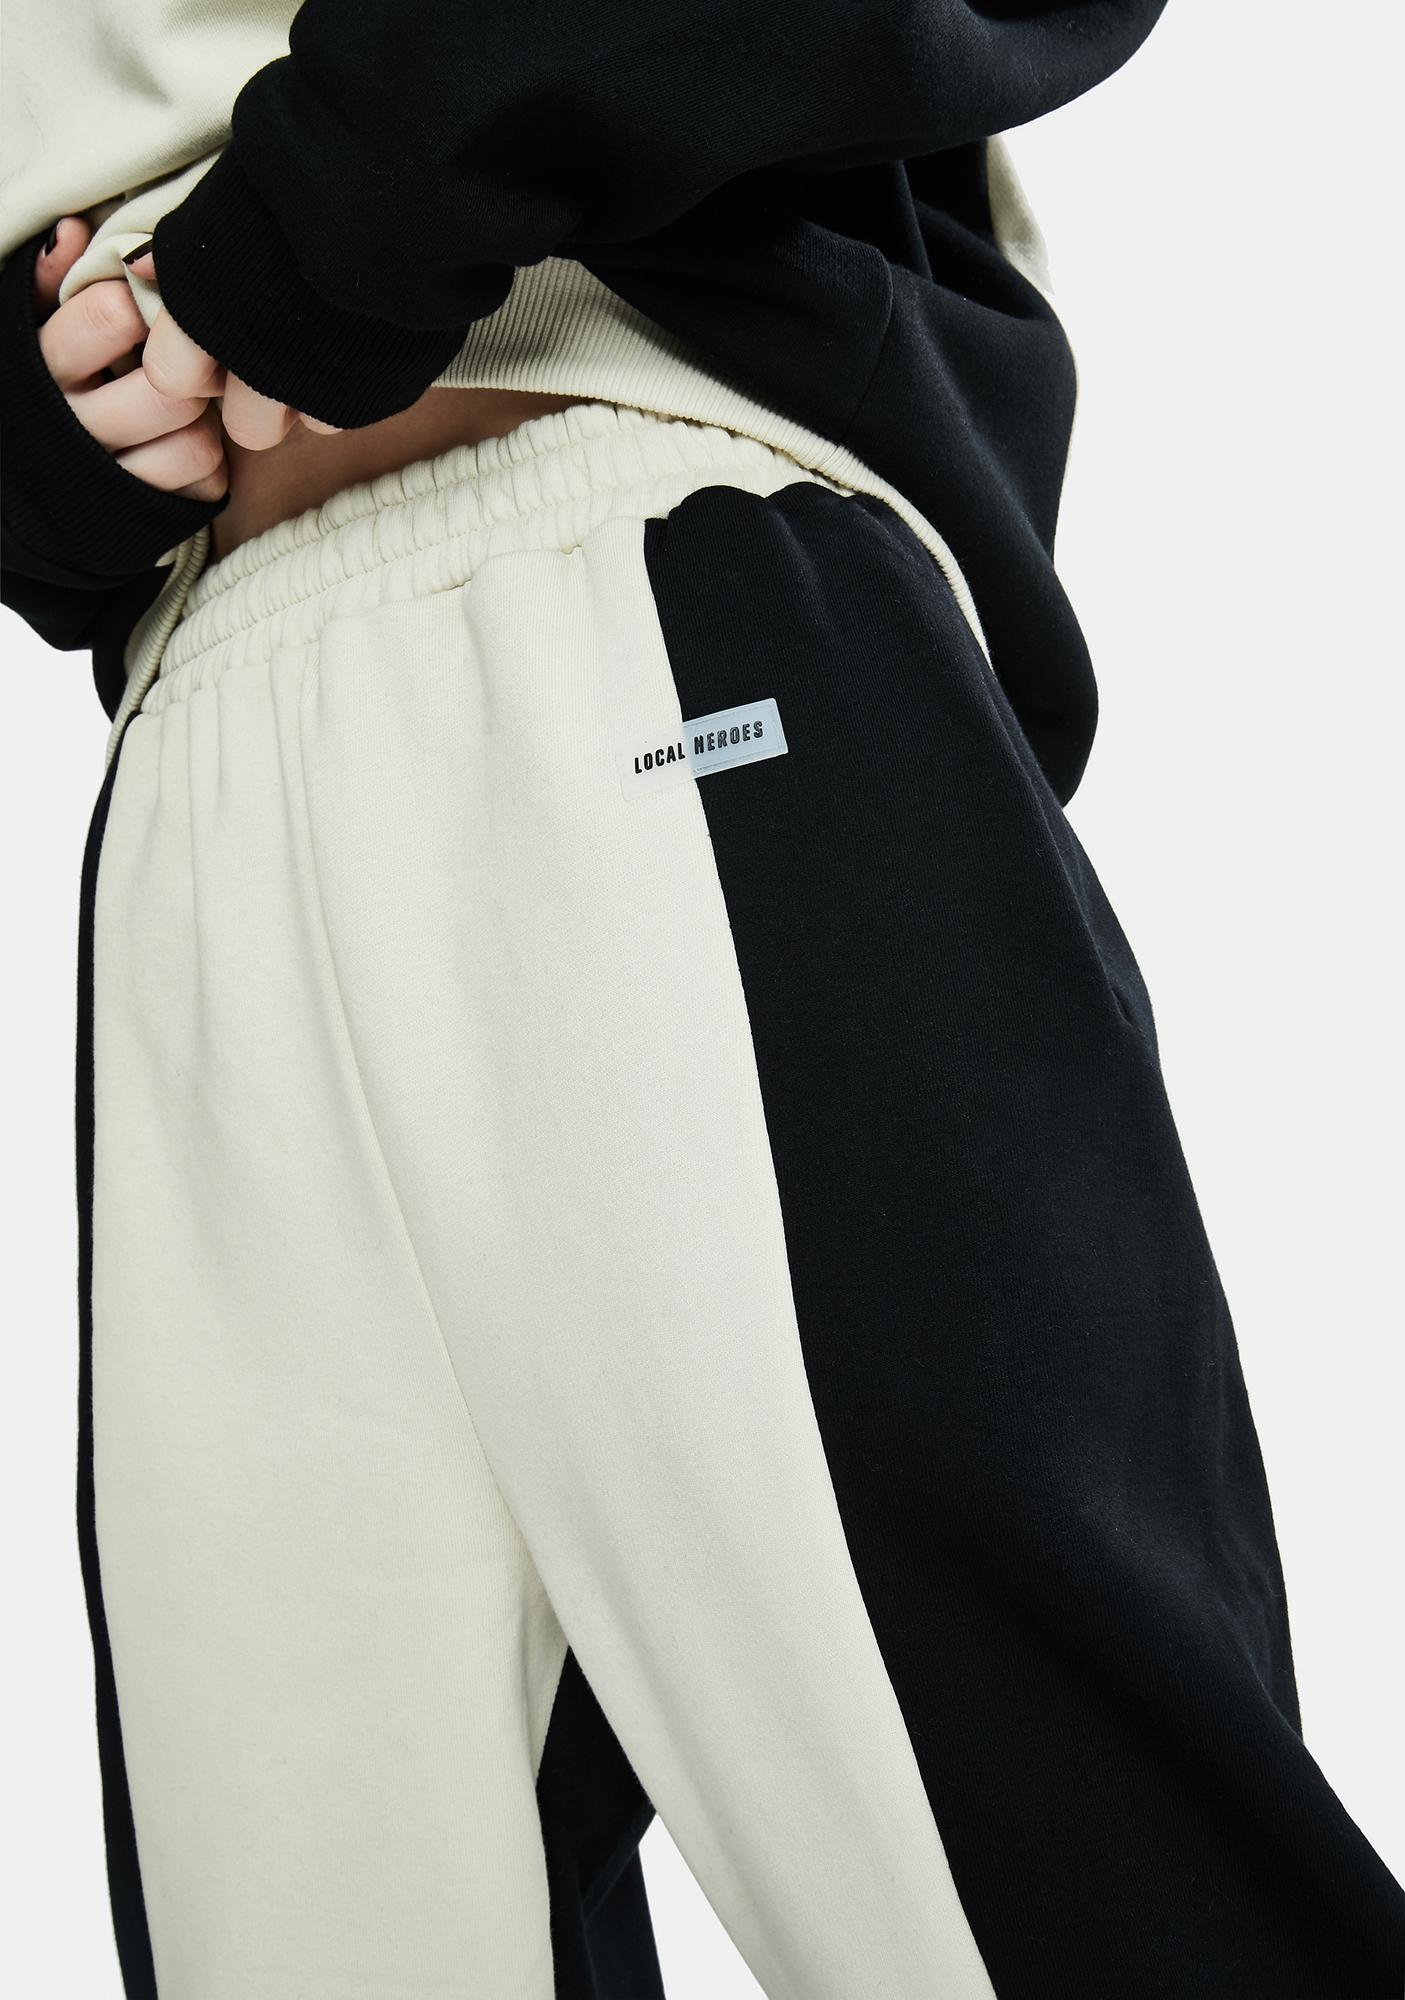 Local Heroes Wave Two-Tone Sweatpants